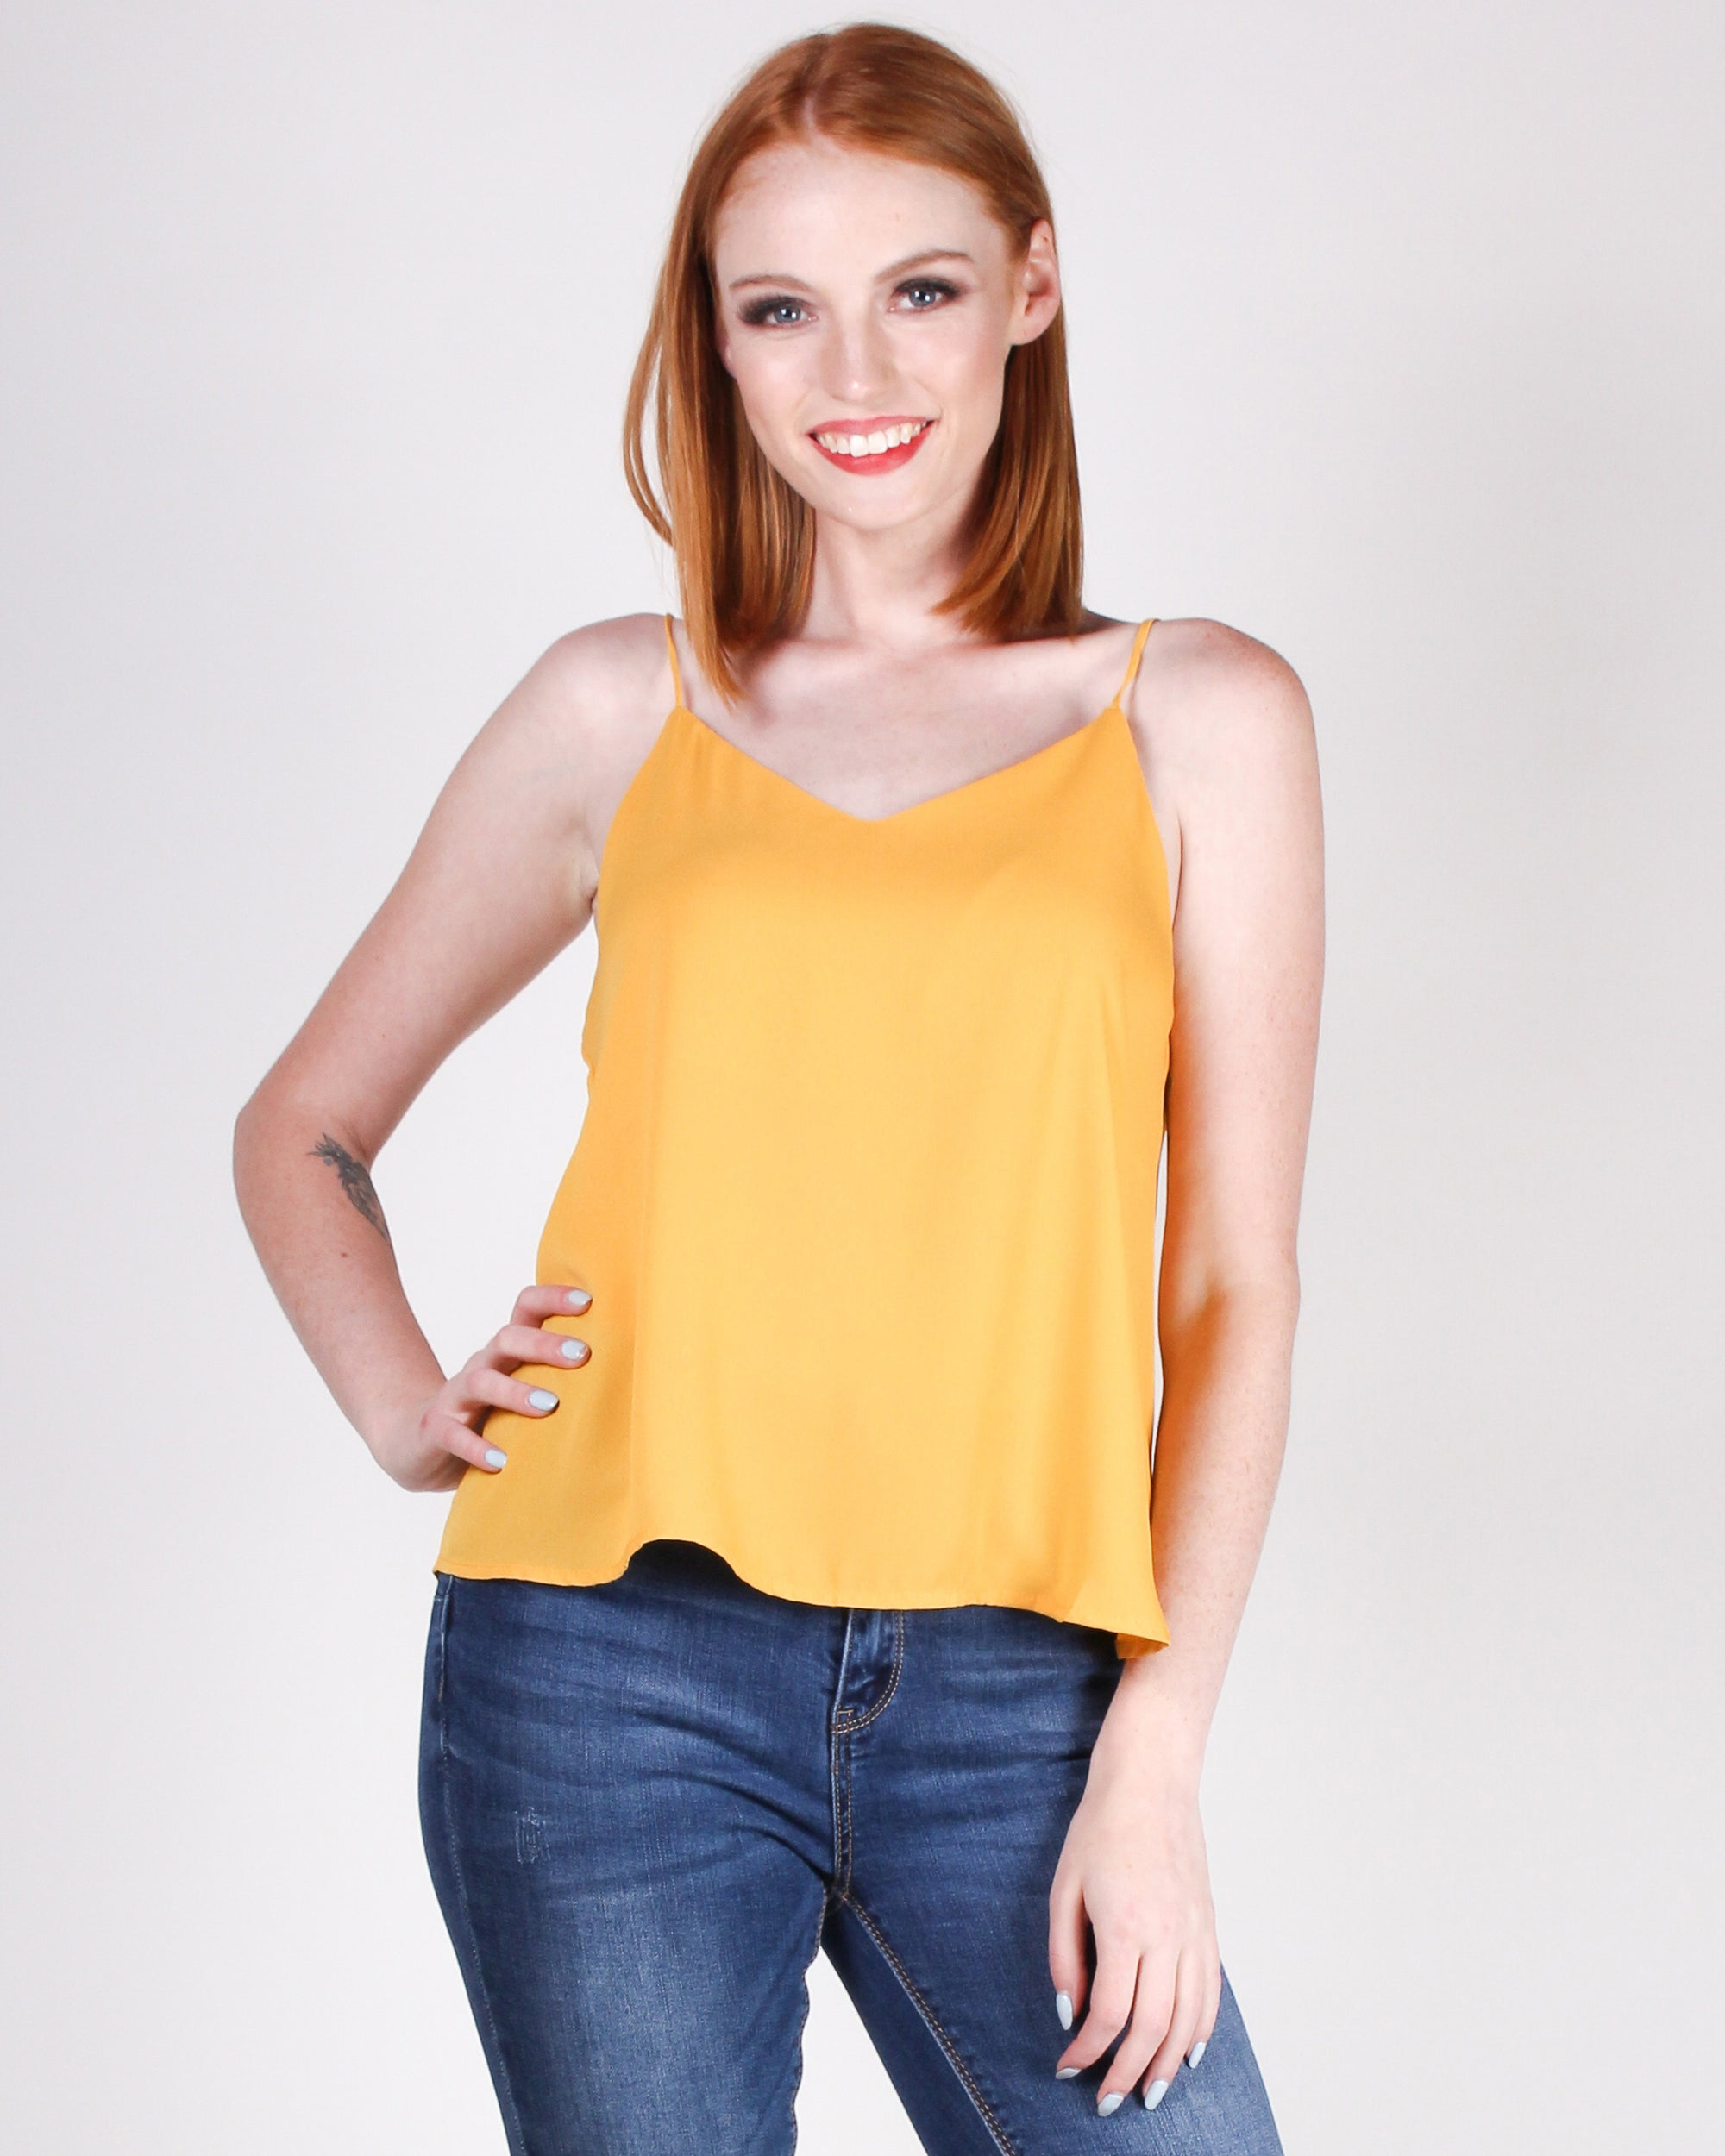 Fashion Q Shop Q One Day at a Time Blouse (Yellow) T10381